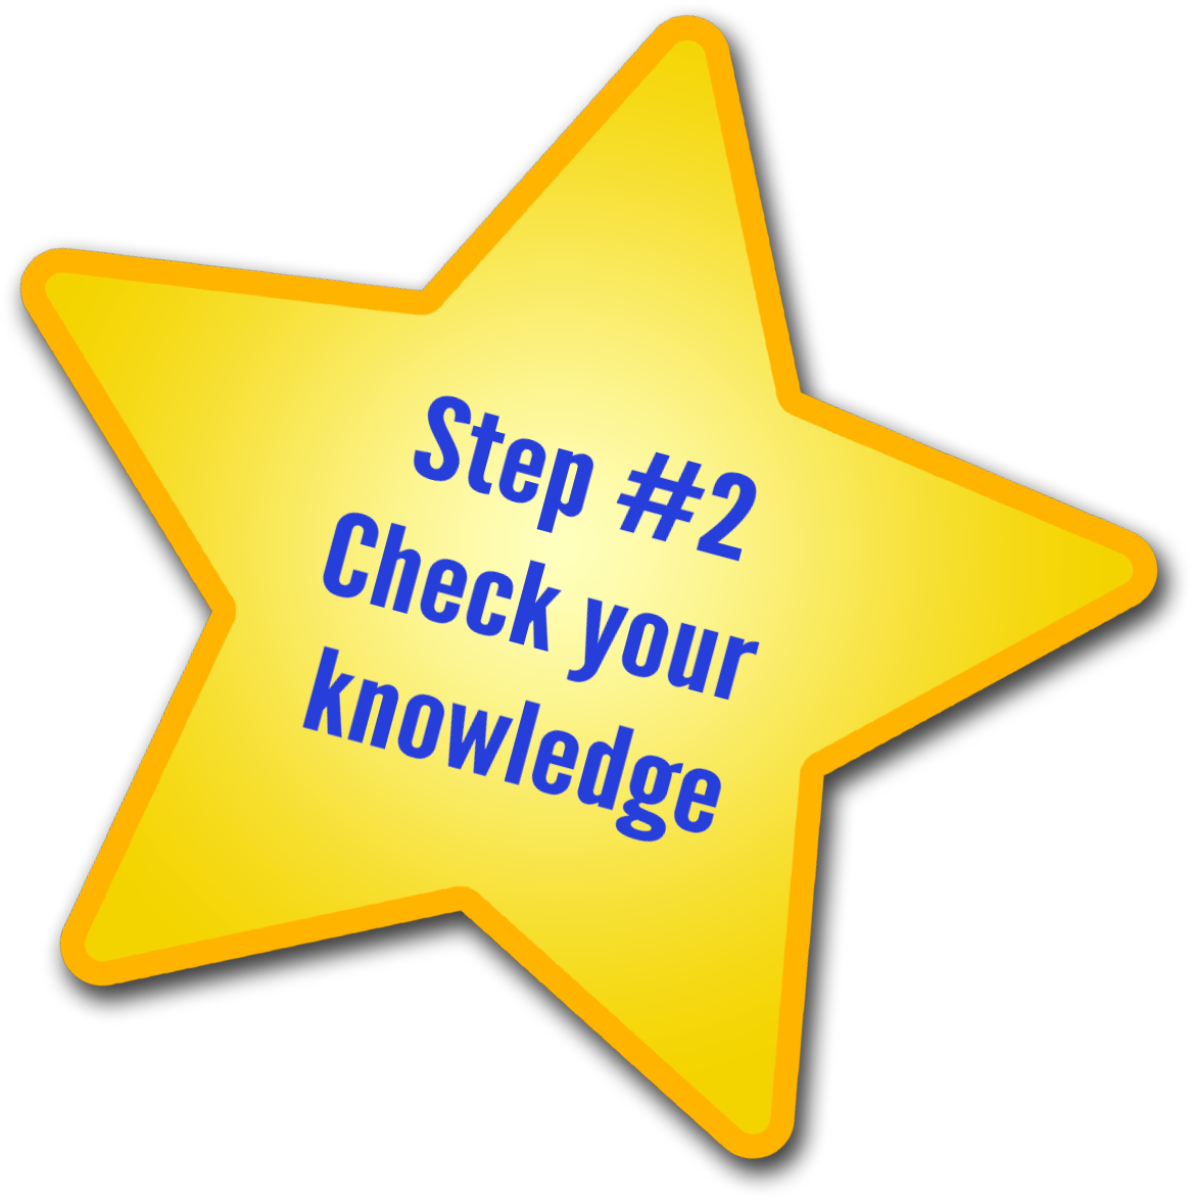 Step 2 - Check your knowledge